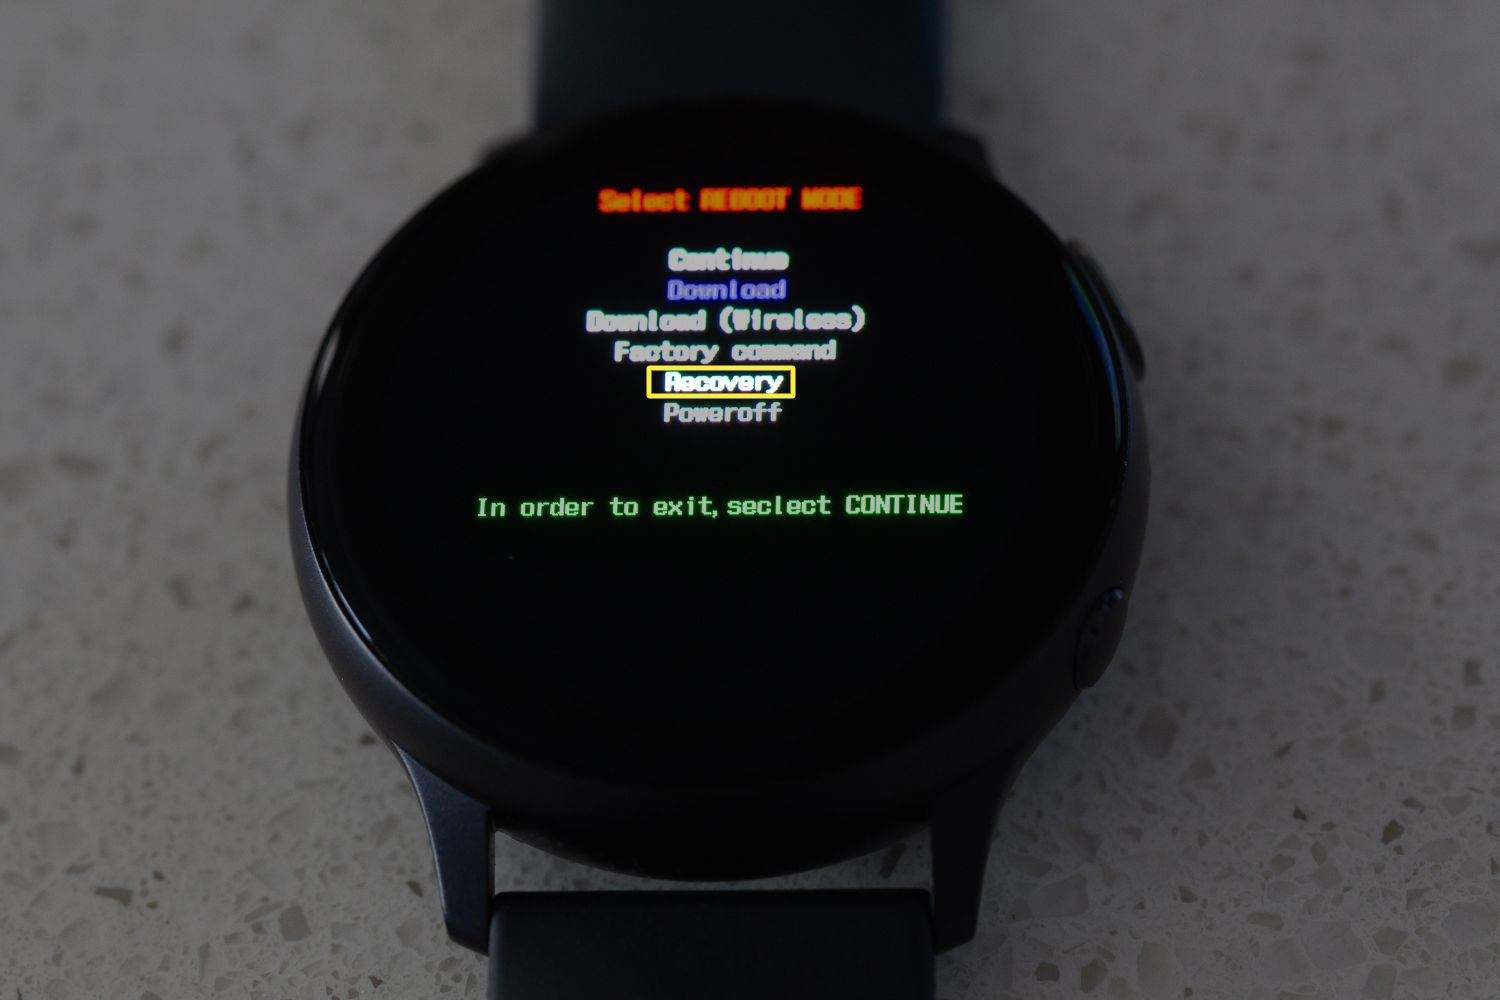 The Reboot menu with Recovery selected on the Samsung Galaxy Watch Active2.